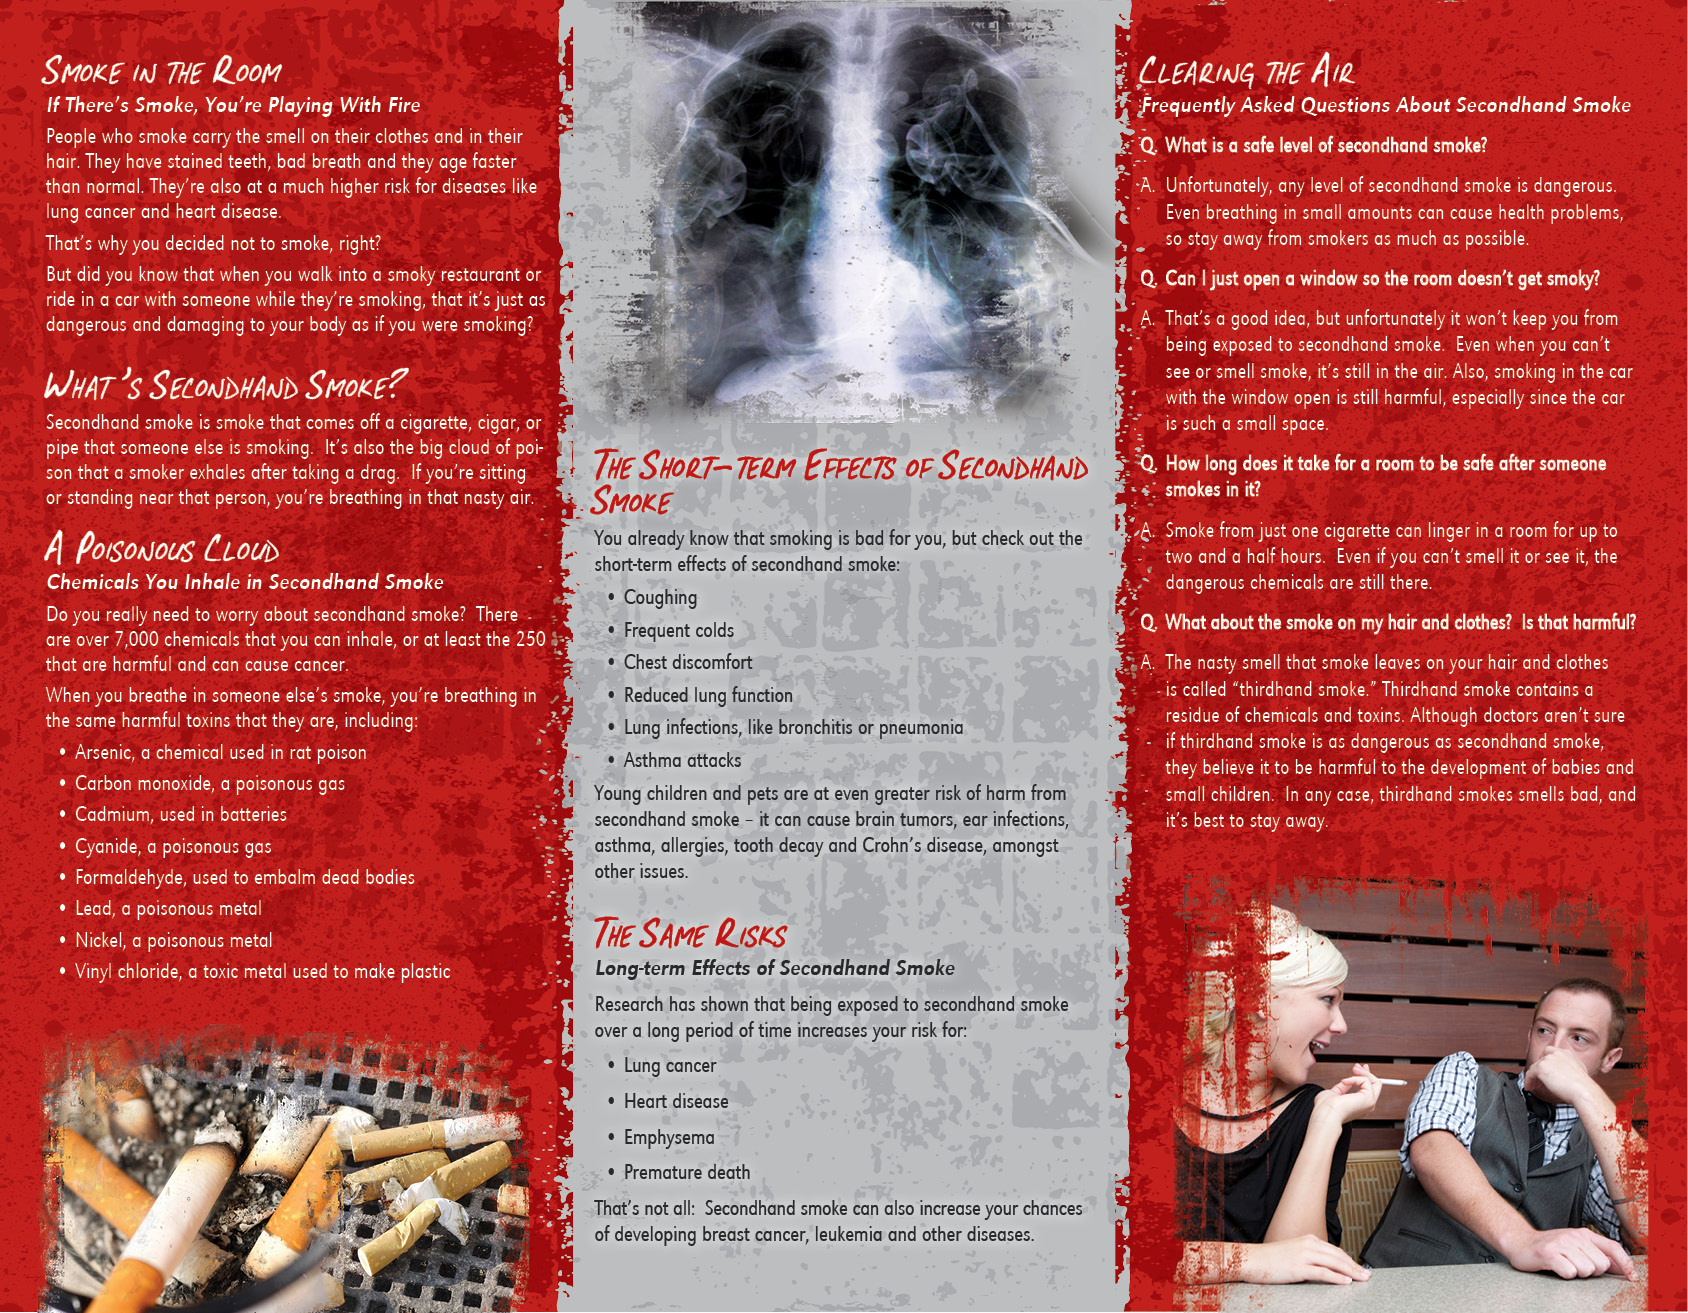 an argument that smokers are the victims of secondhand smoke Hi, i read the recent news where mps highlighted the issue of secondhand smoke entering innocent non smokers homes it seems that current laws of prohibiting smoking in open spaces are only going to force smokers to smoke in their homes the difference between open space and home is that the home is enclosed and mo.